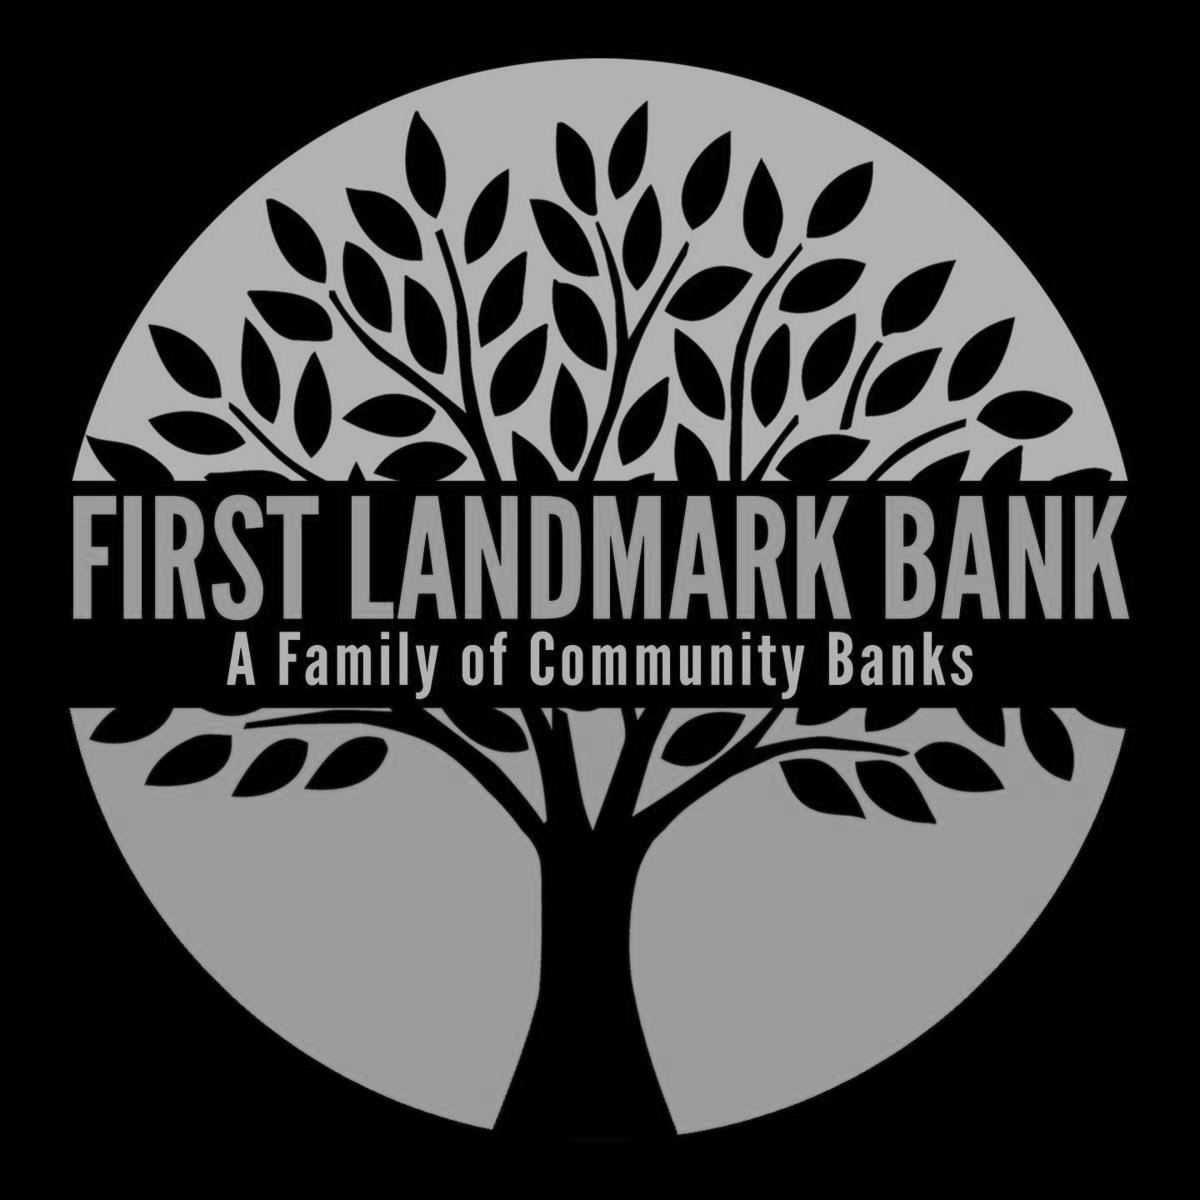 first landmark bank.png